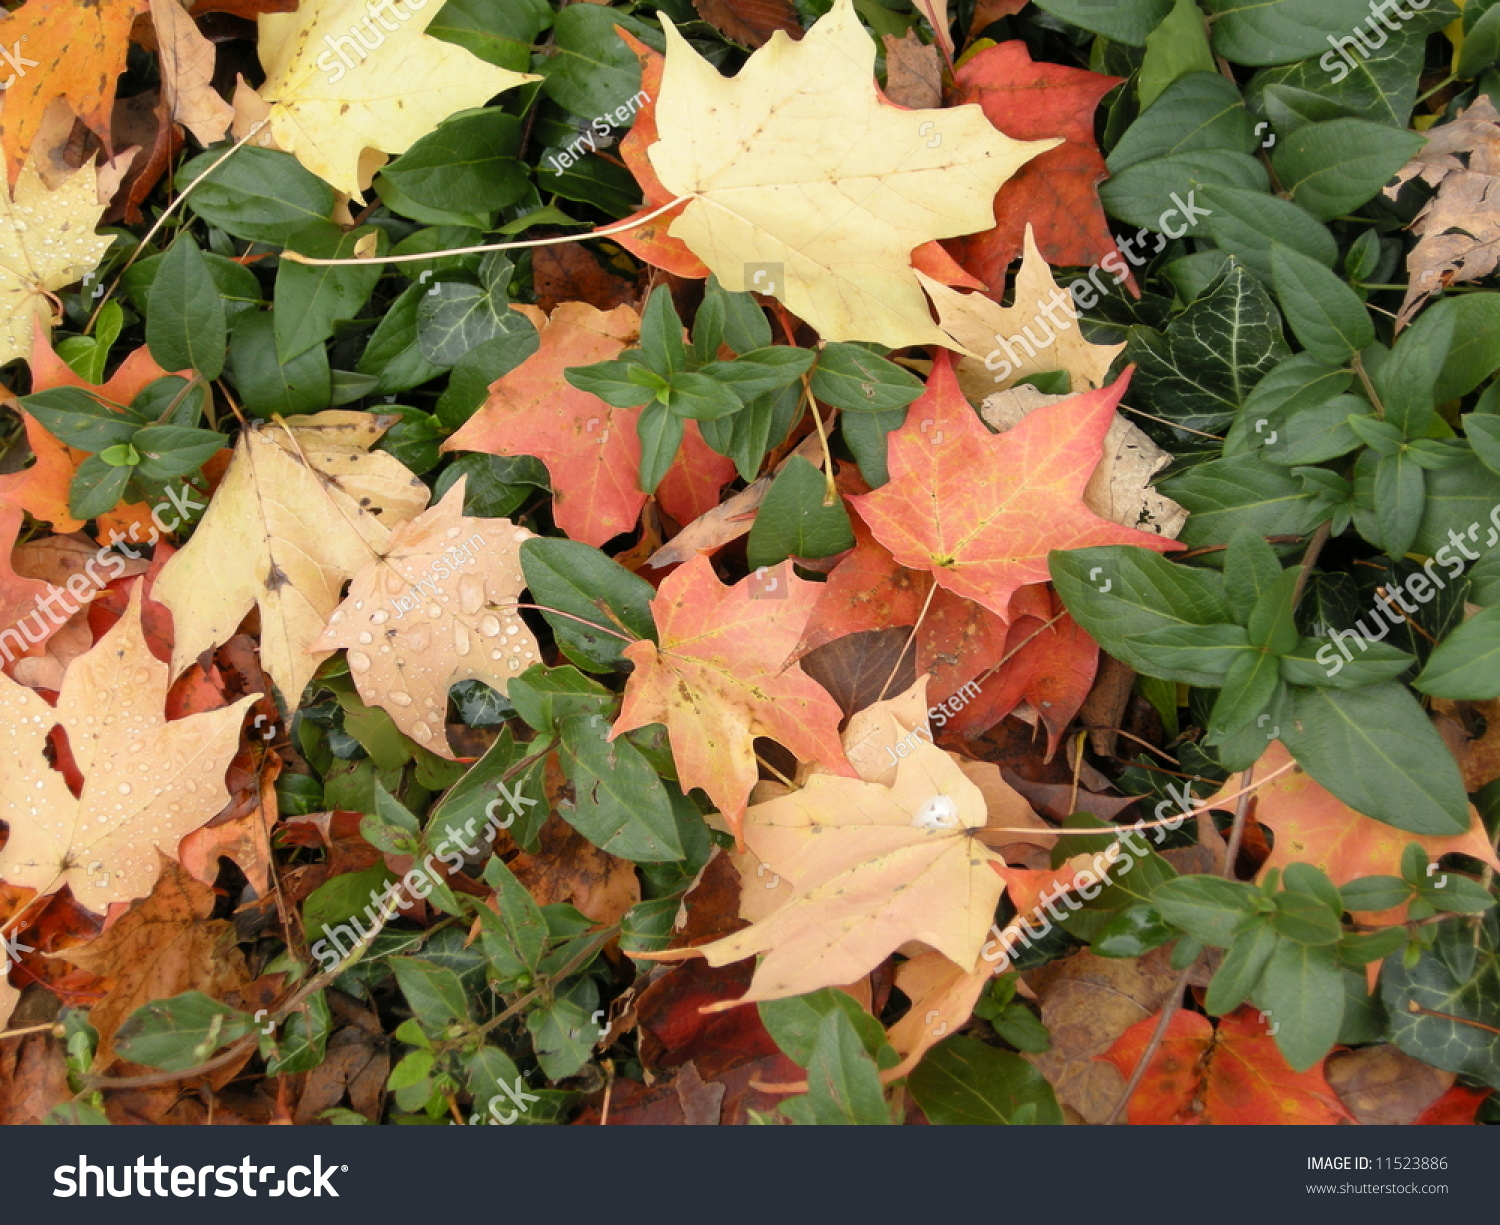 Maple Leaves In Ground Cover Stock Photo 11523886 ...